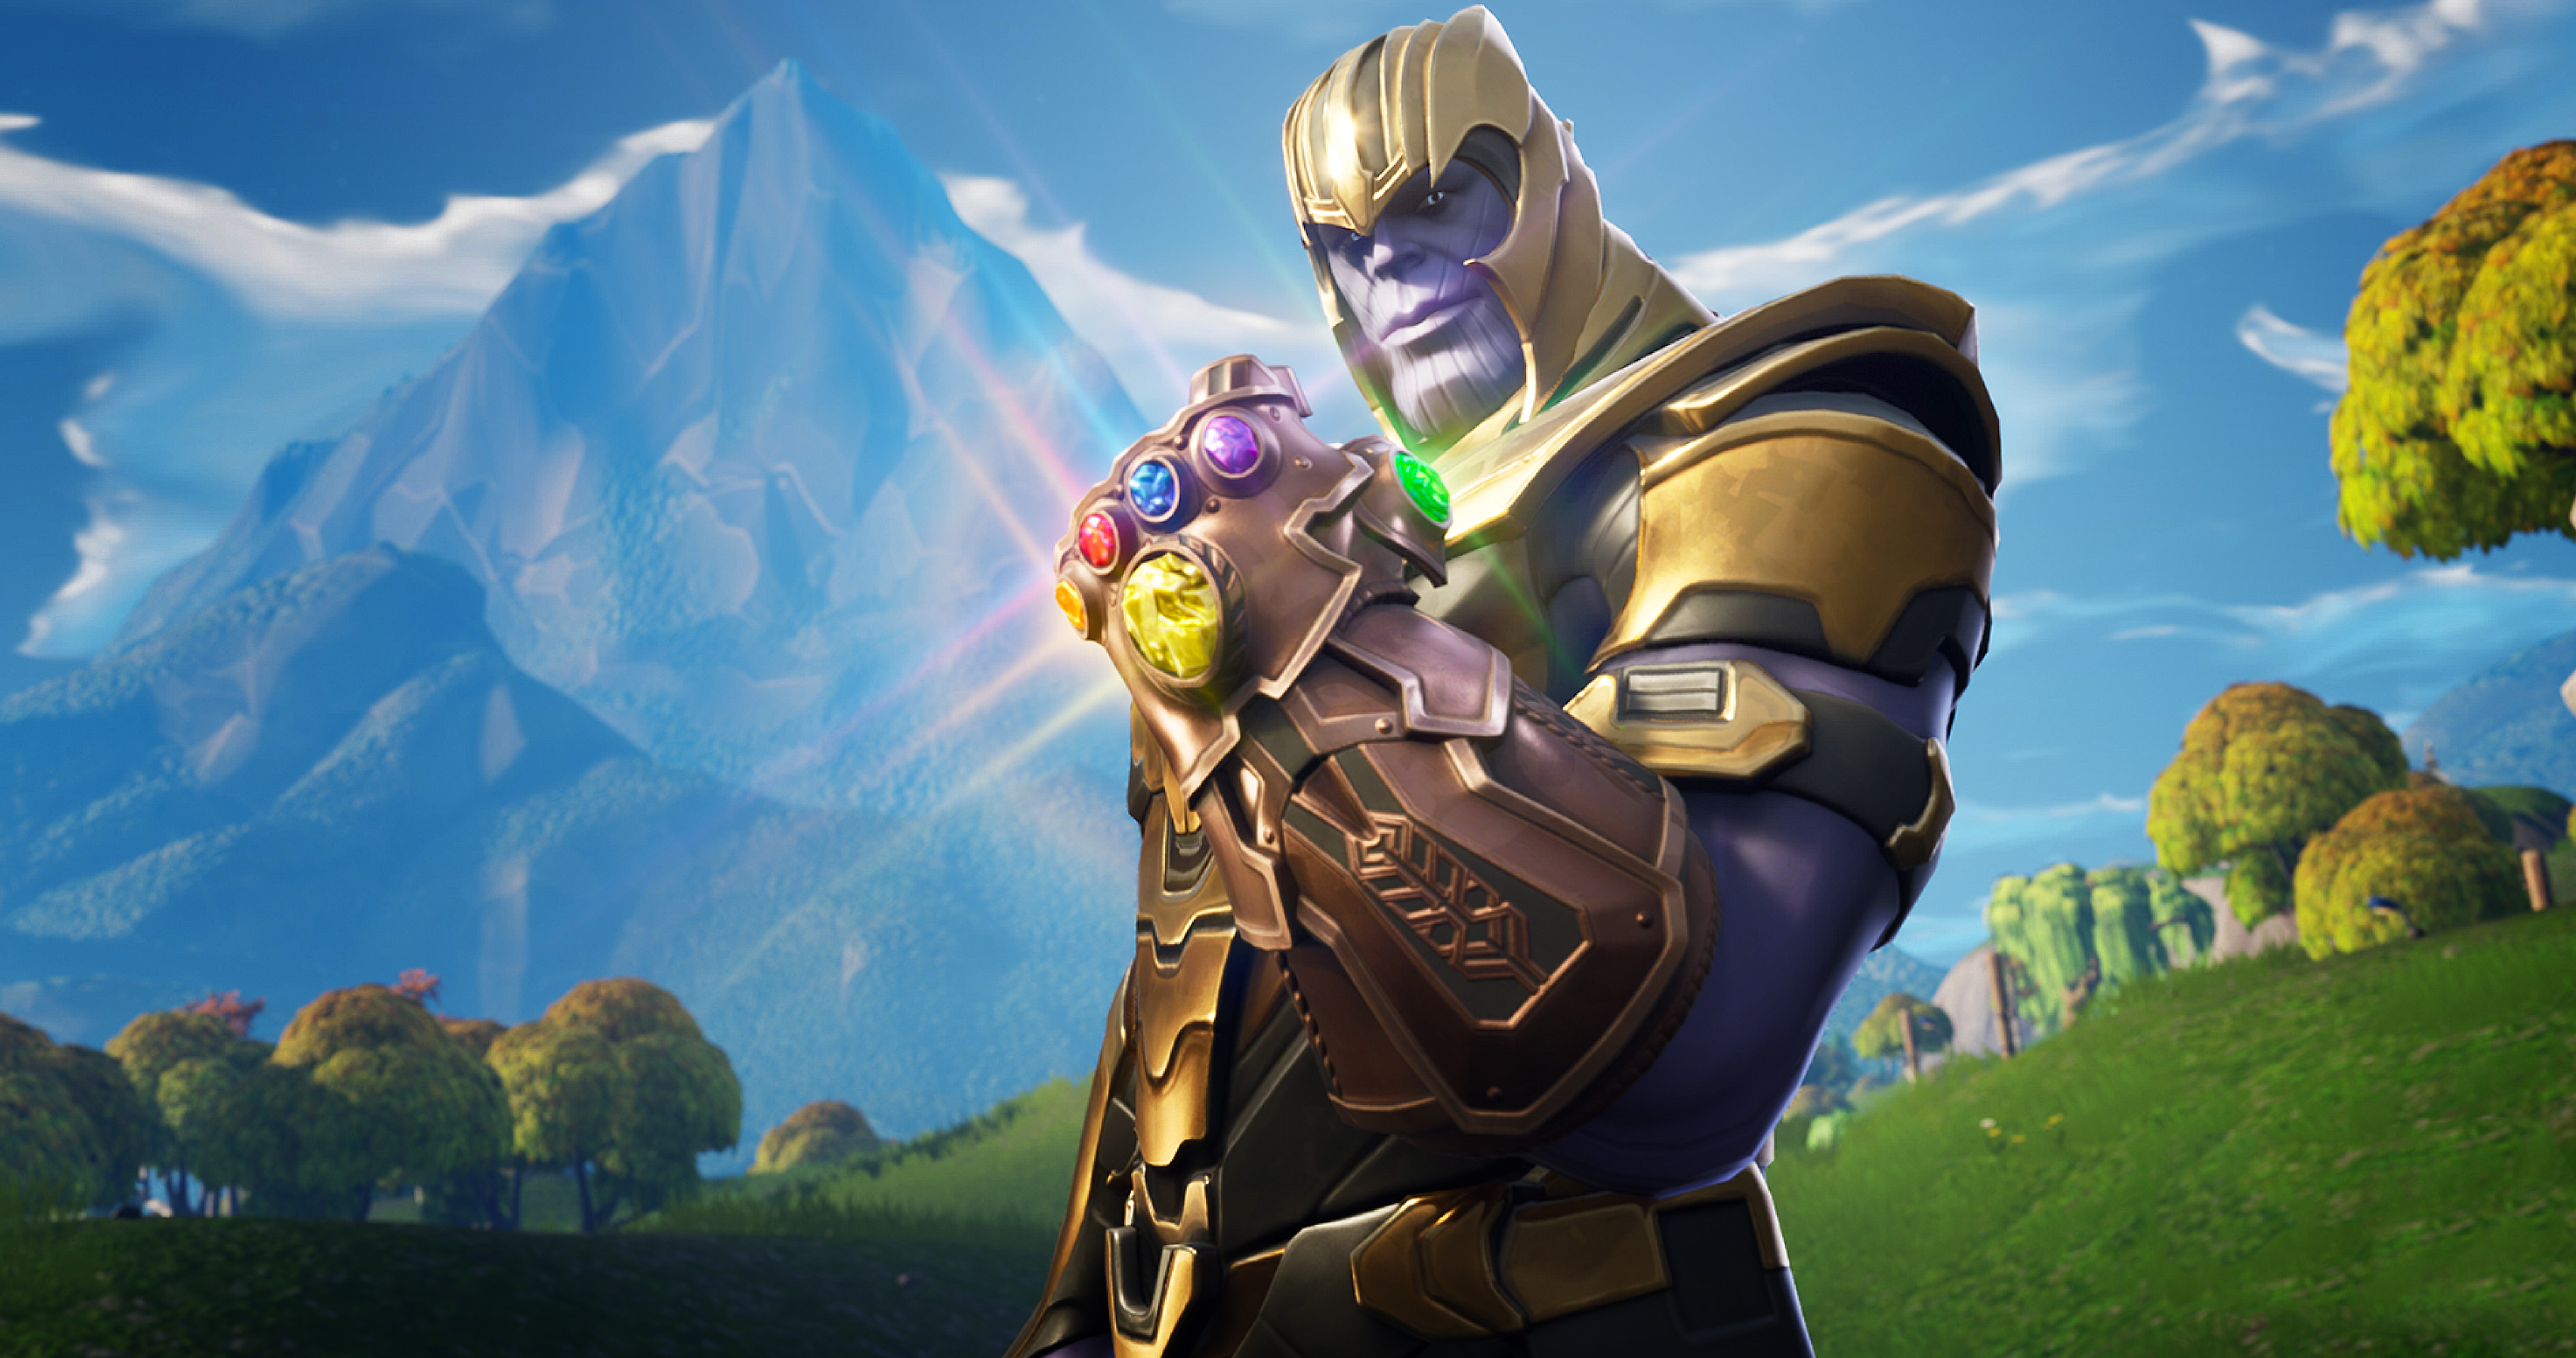 2048x2048 Thanos In Fortnite Battle Royale Ipad Air Hd 4k Wallpapers Images Backgrounds Photos And Pictures